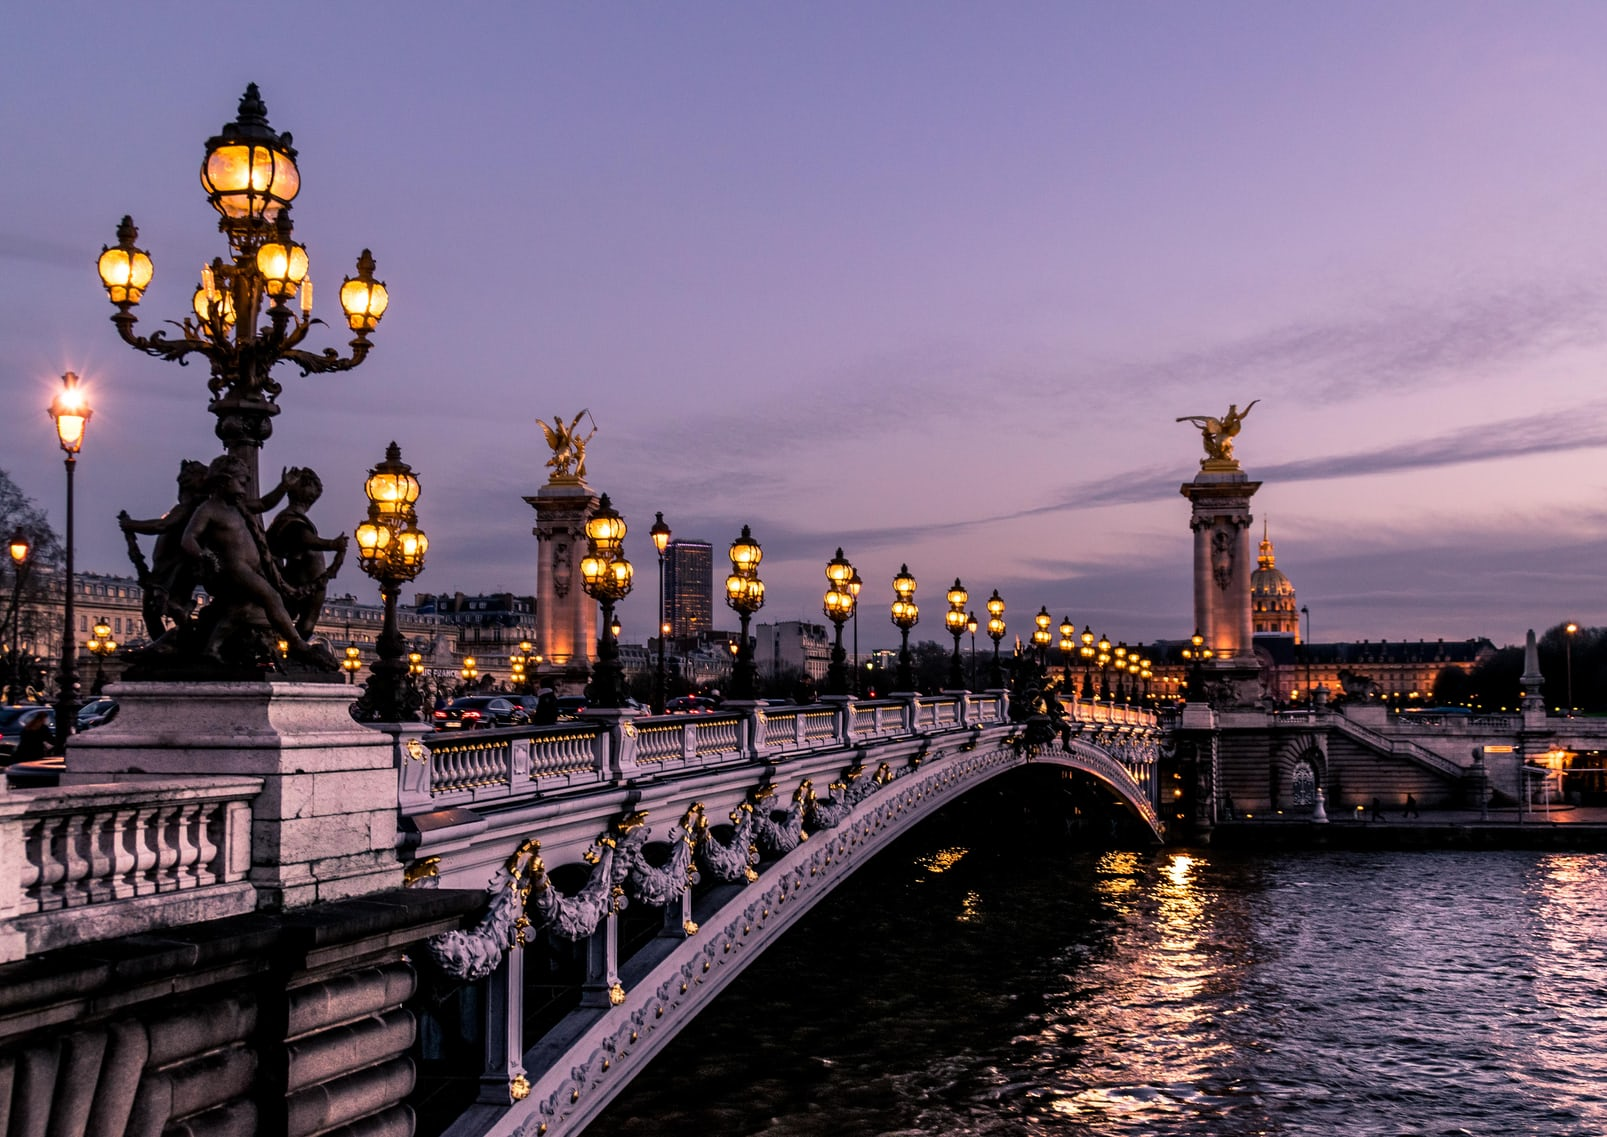 Parisian bridge | Léonard Cotte on Unsplash